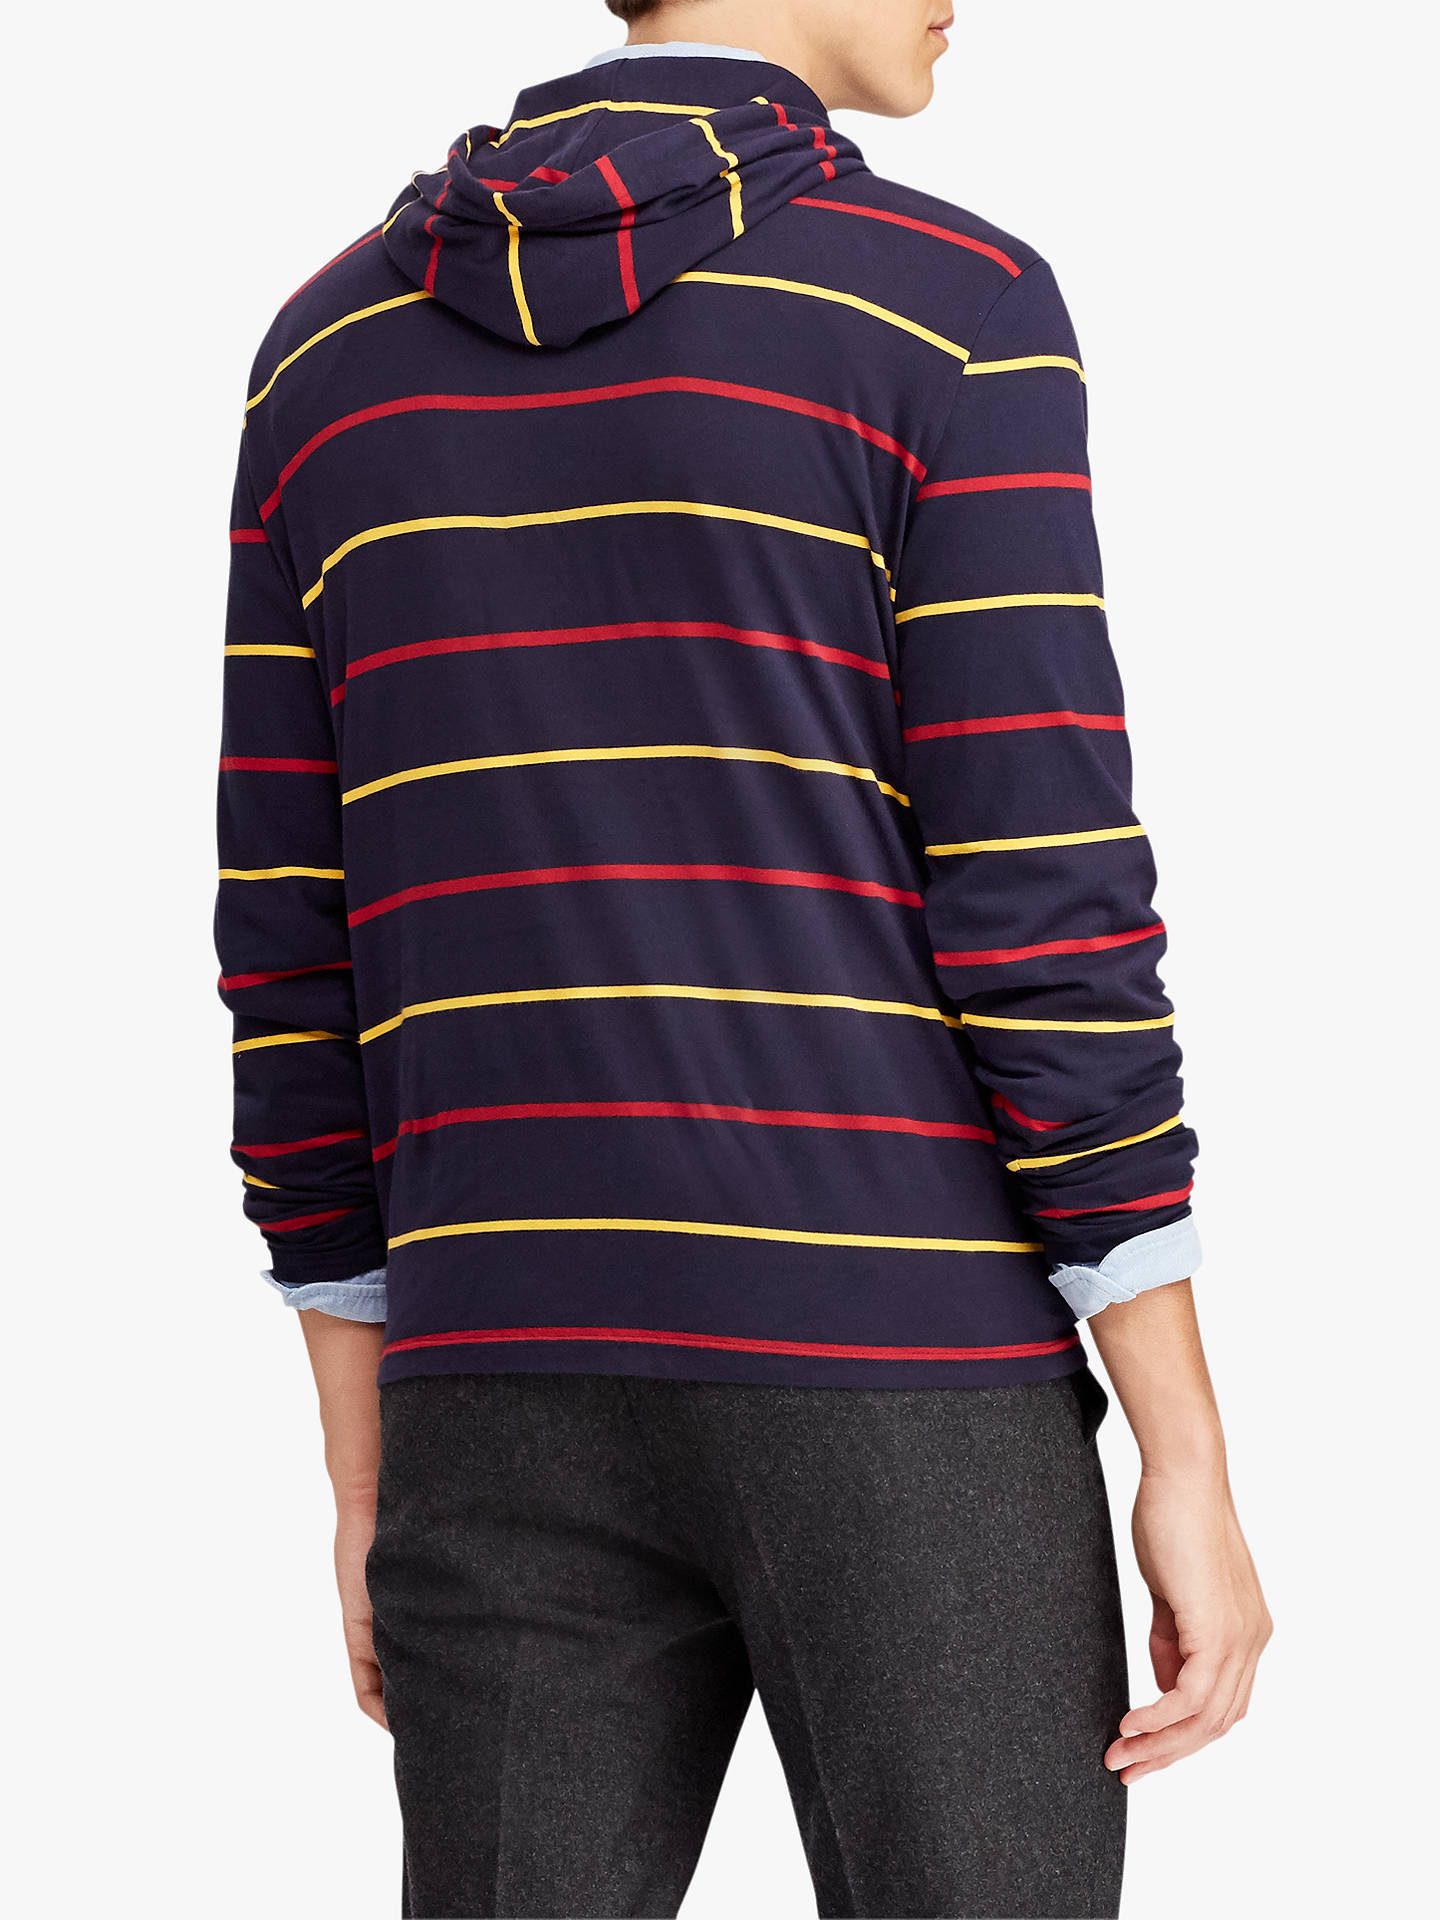 Buy Polo Ralph Lauren Long Sleeve Hooded T-Shirt, Classic Wine/Multi, L Online at johnlewis.com